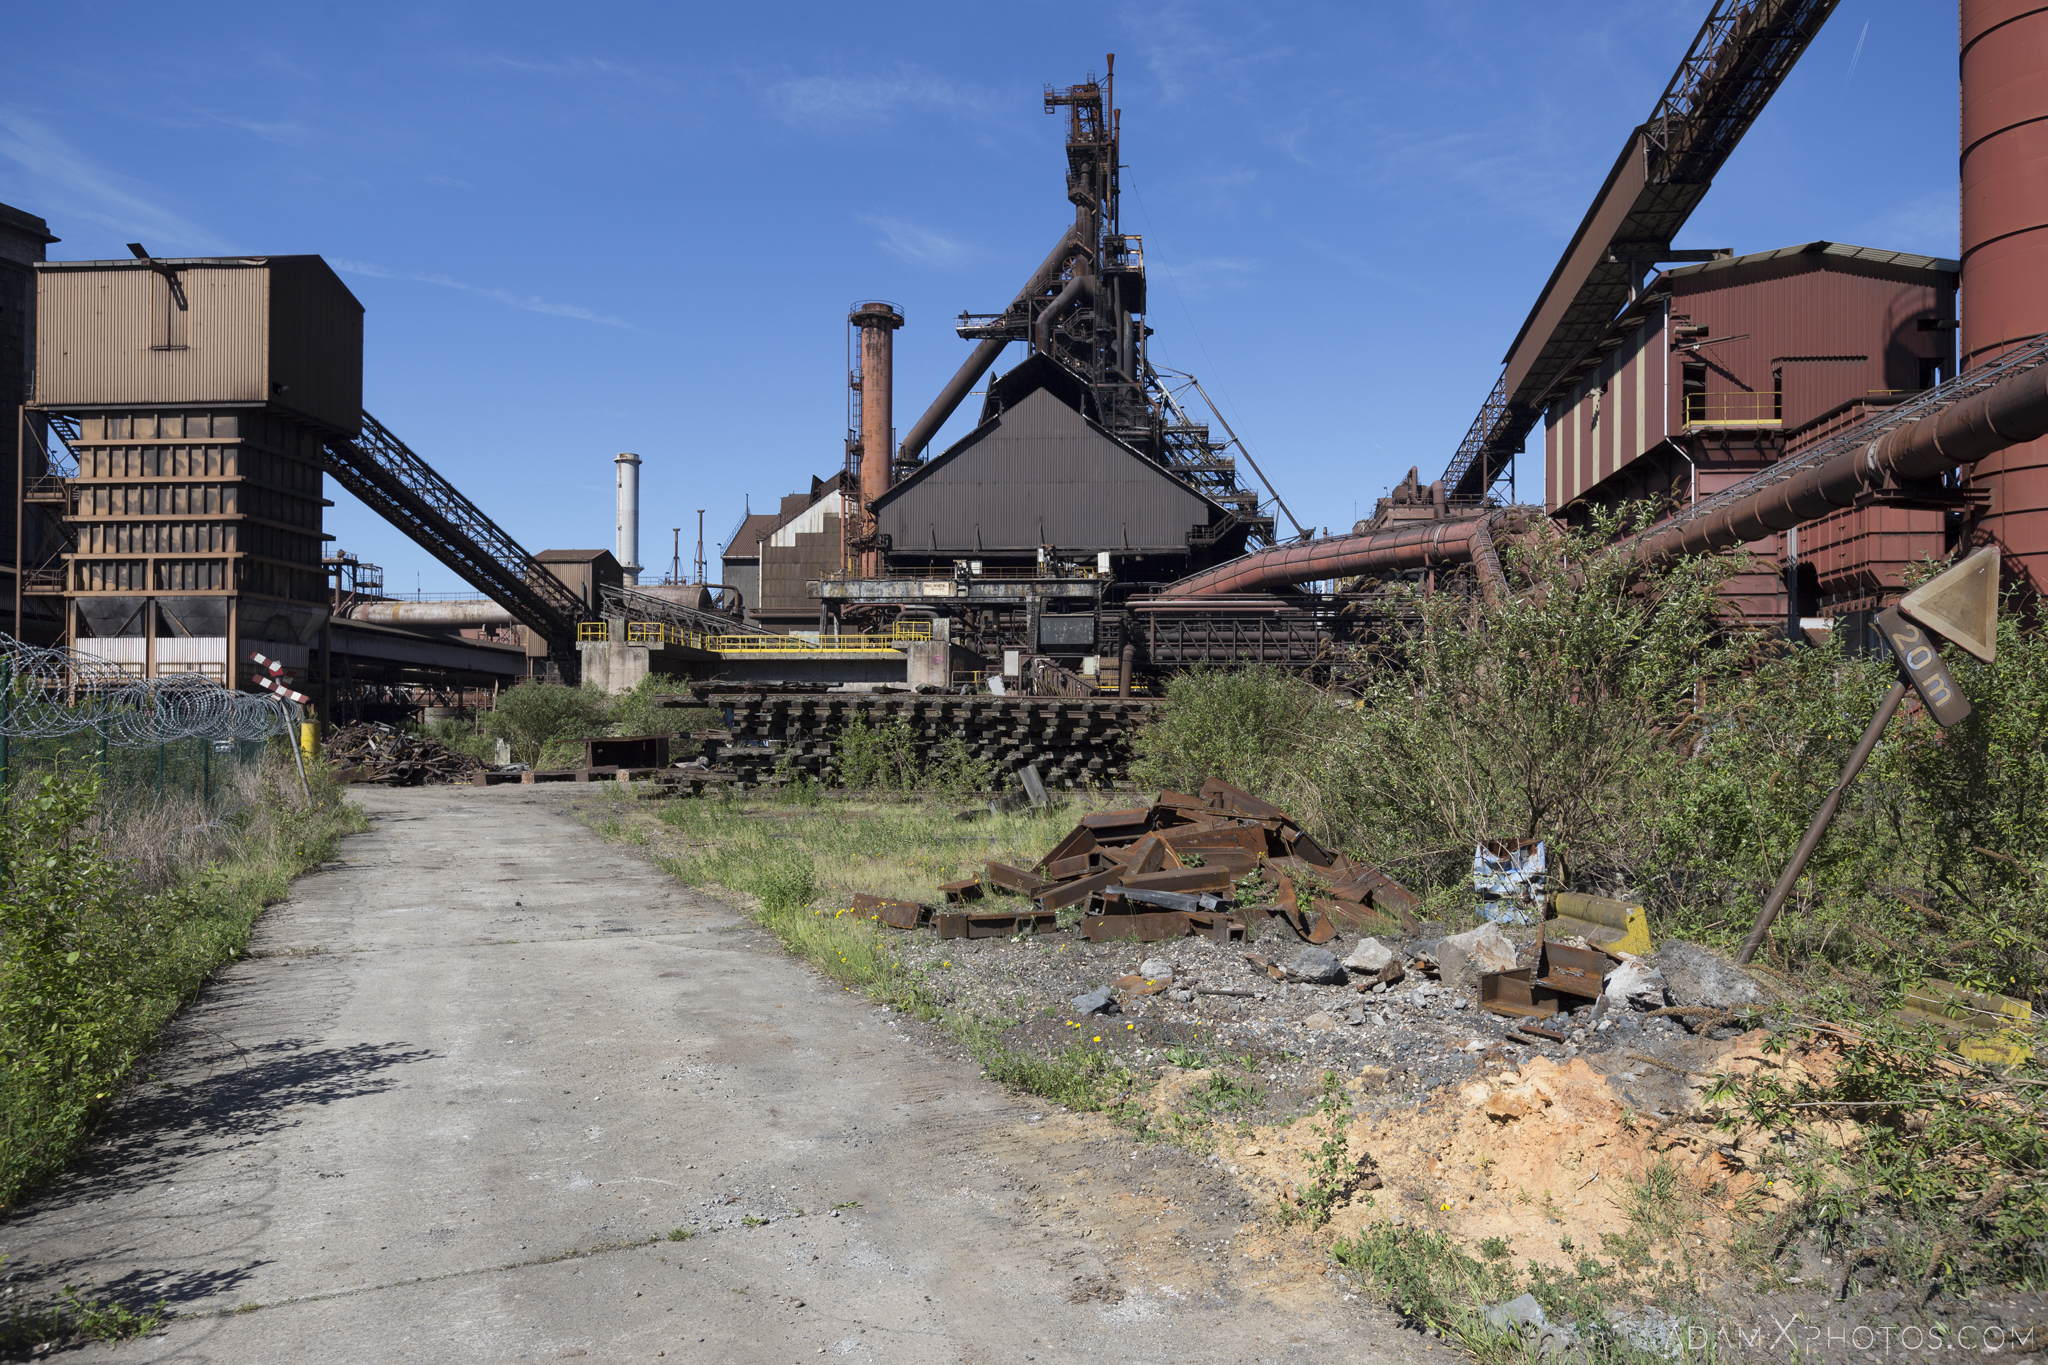 External outside view Haut Fourneau B HFB Blast Furnace Steelworks Adam X Urban Exploration Belgium Access 2017 Abandoned decay lost forgotten derelict location creepy haunting eerie